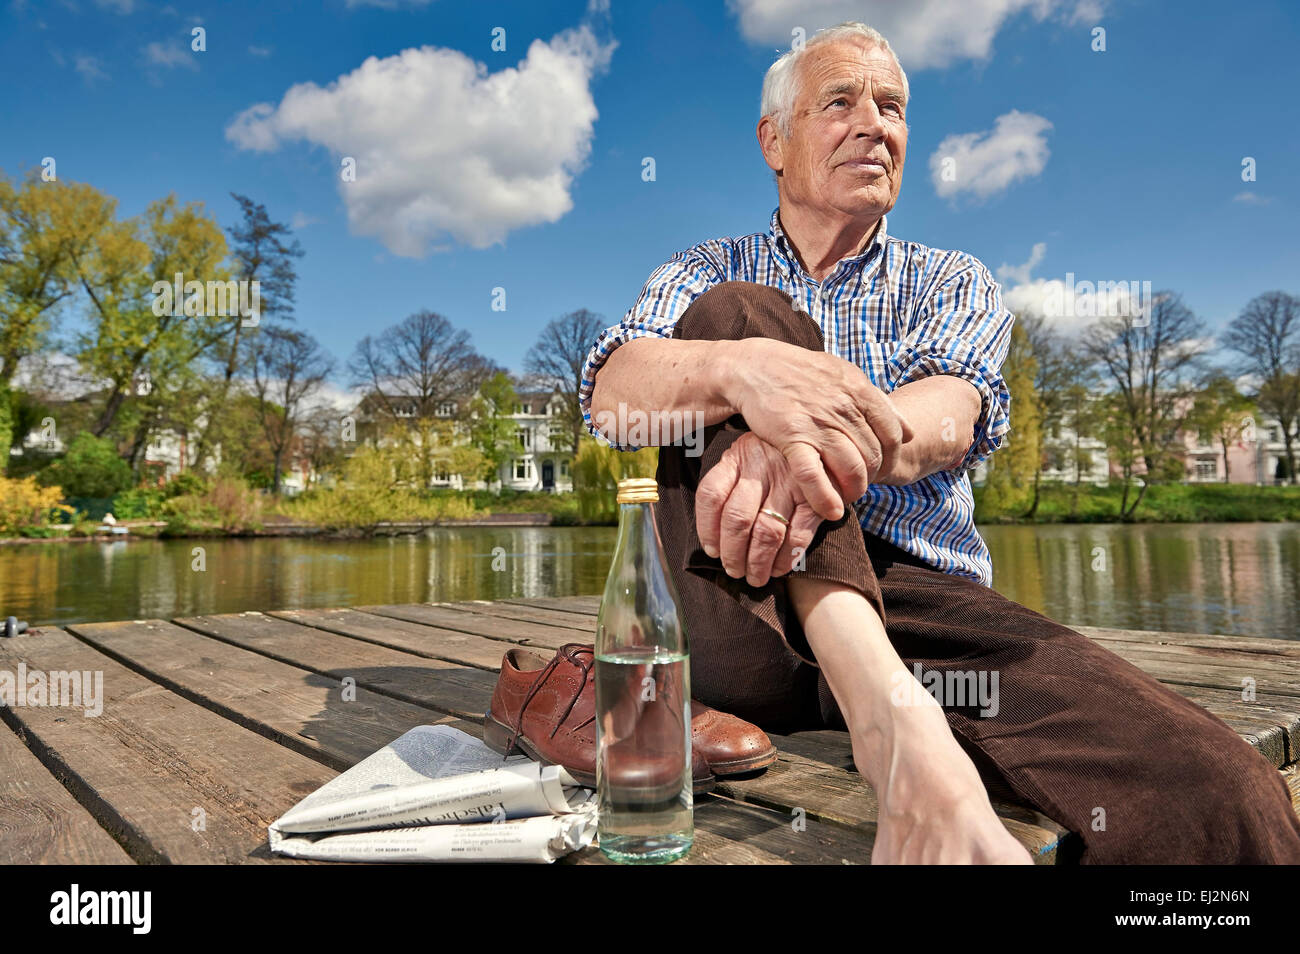 Senior sitting on a boardwalk in summer - Stock Image